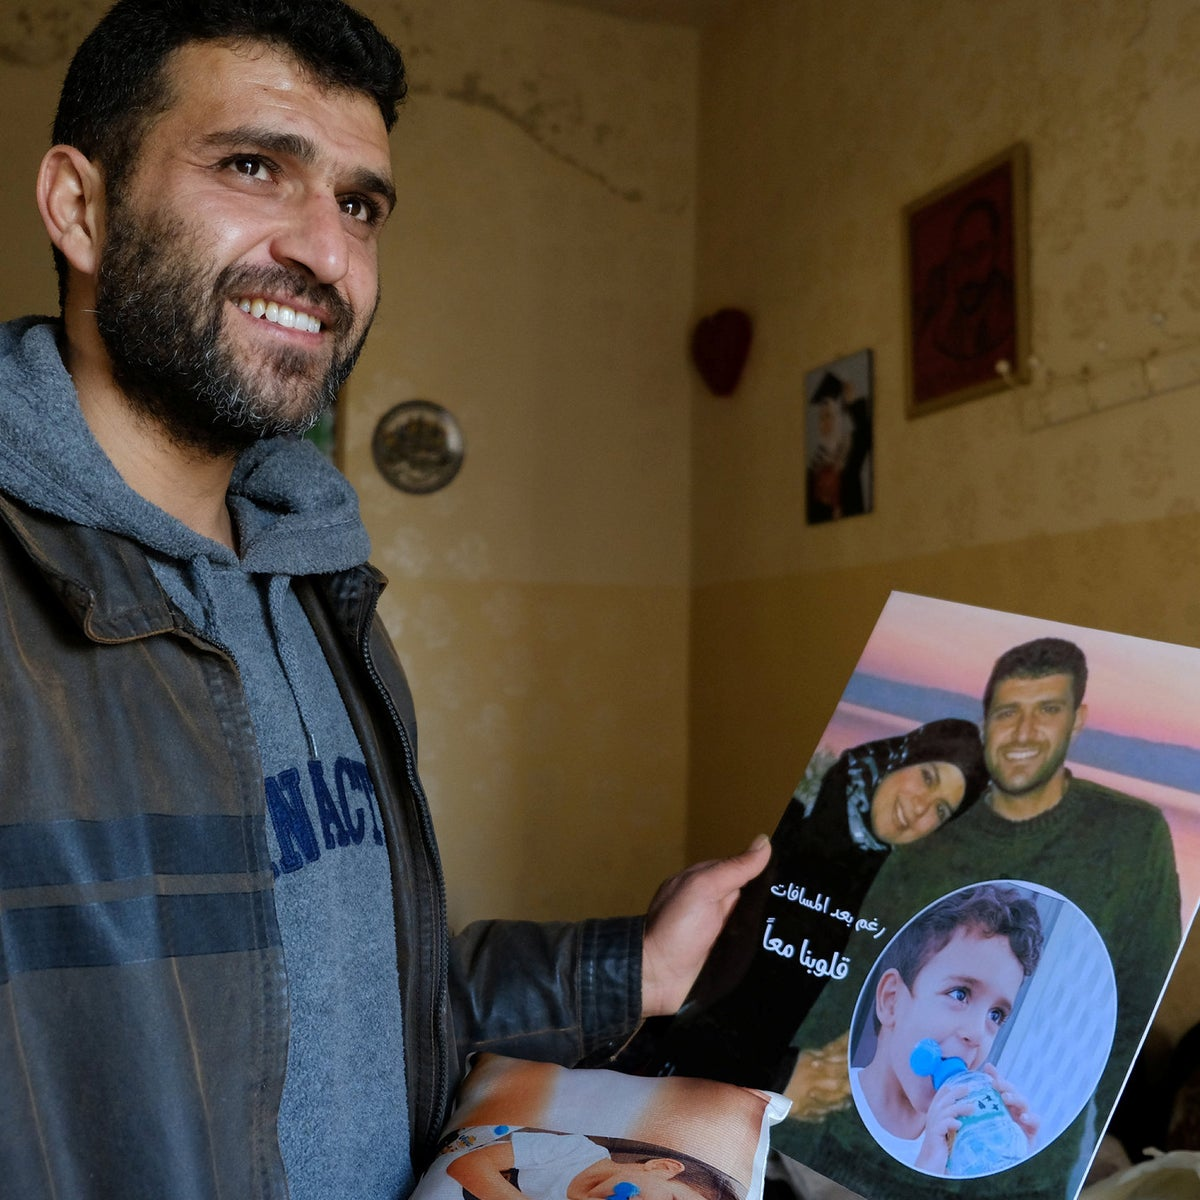 Mohammed Nazal with photos of his wife and son.